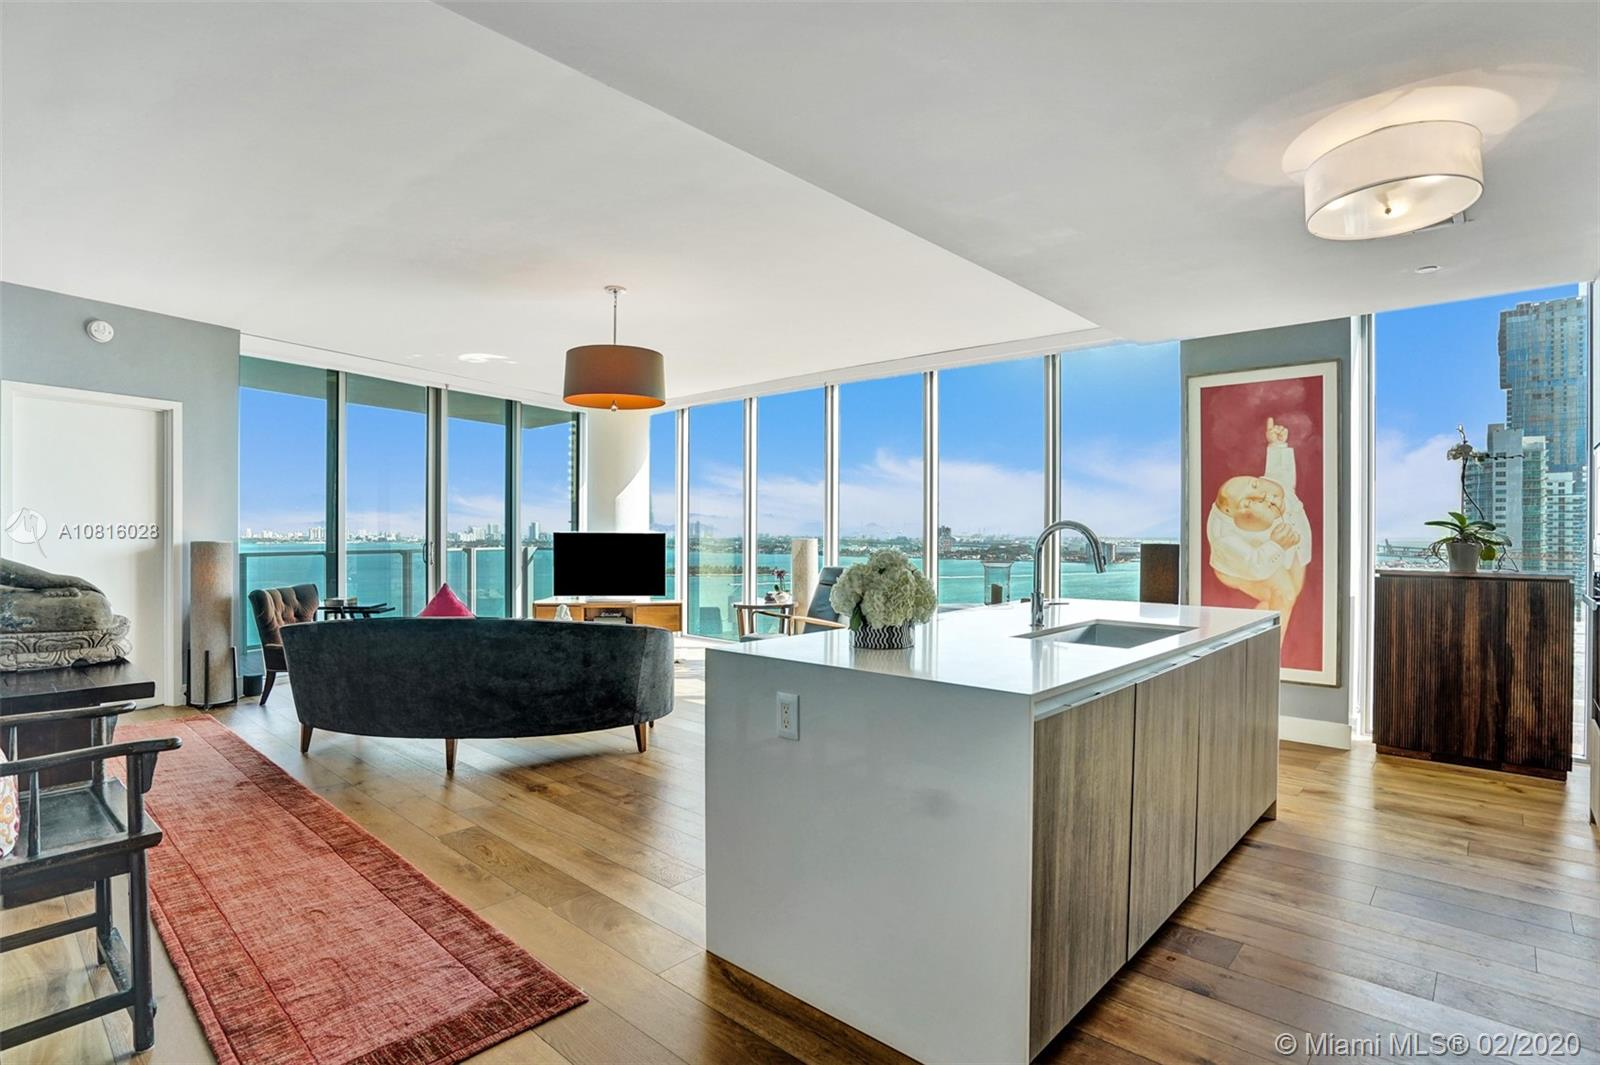 Photo of Biscayne Beach Condo Apt 1907 that clicks through to the property detail page